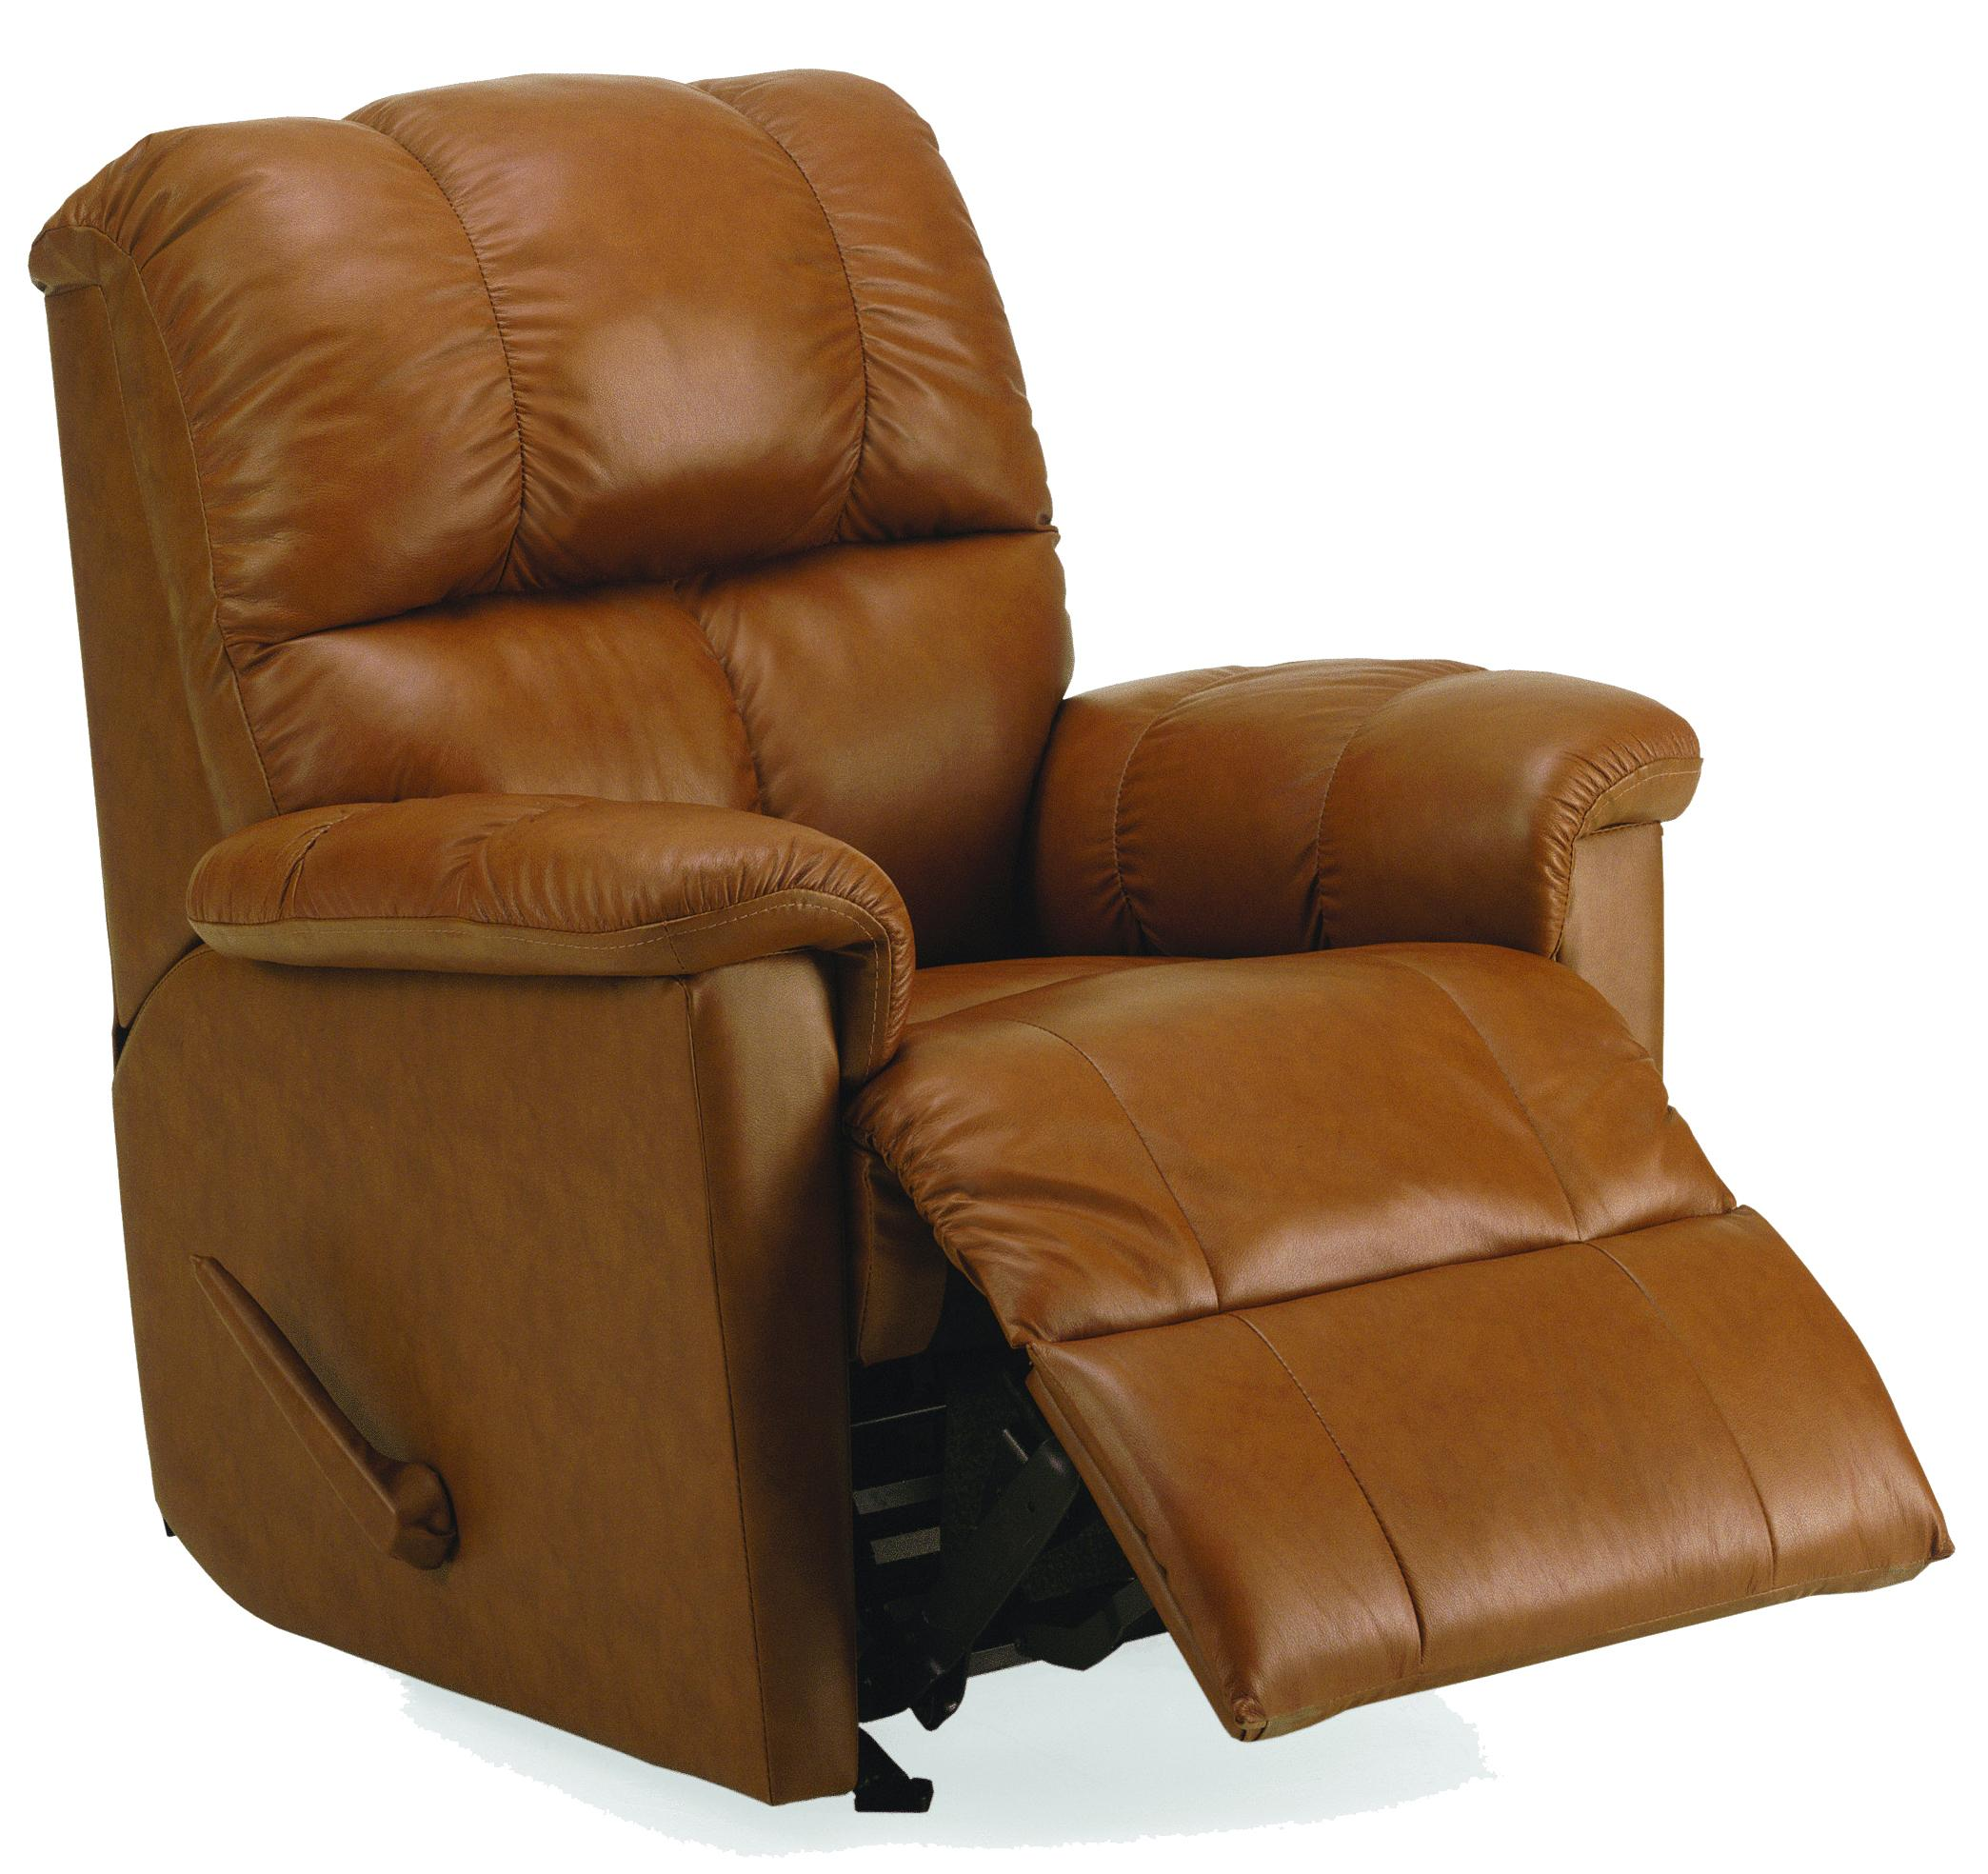 Wall Hugger Lift Chair Gilmore Convienent Power Lift Chair By Palliser At Reid S Furniture